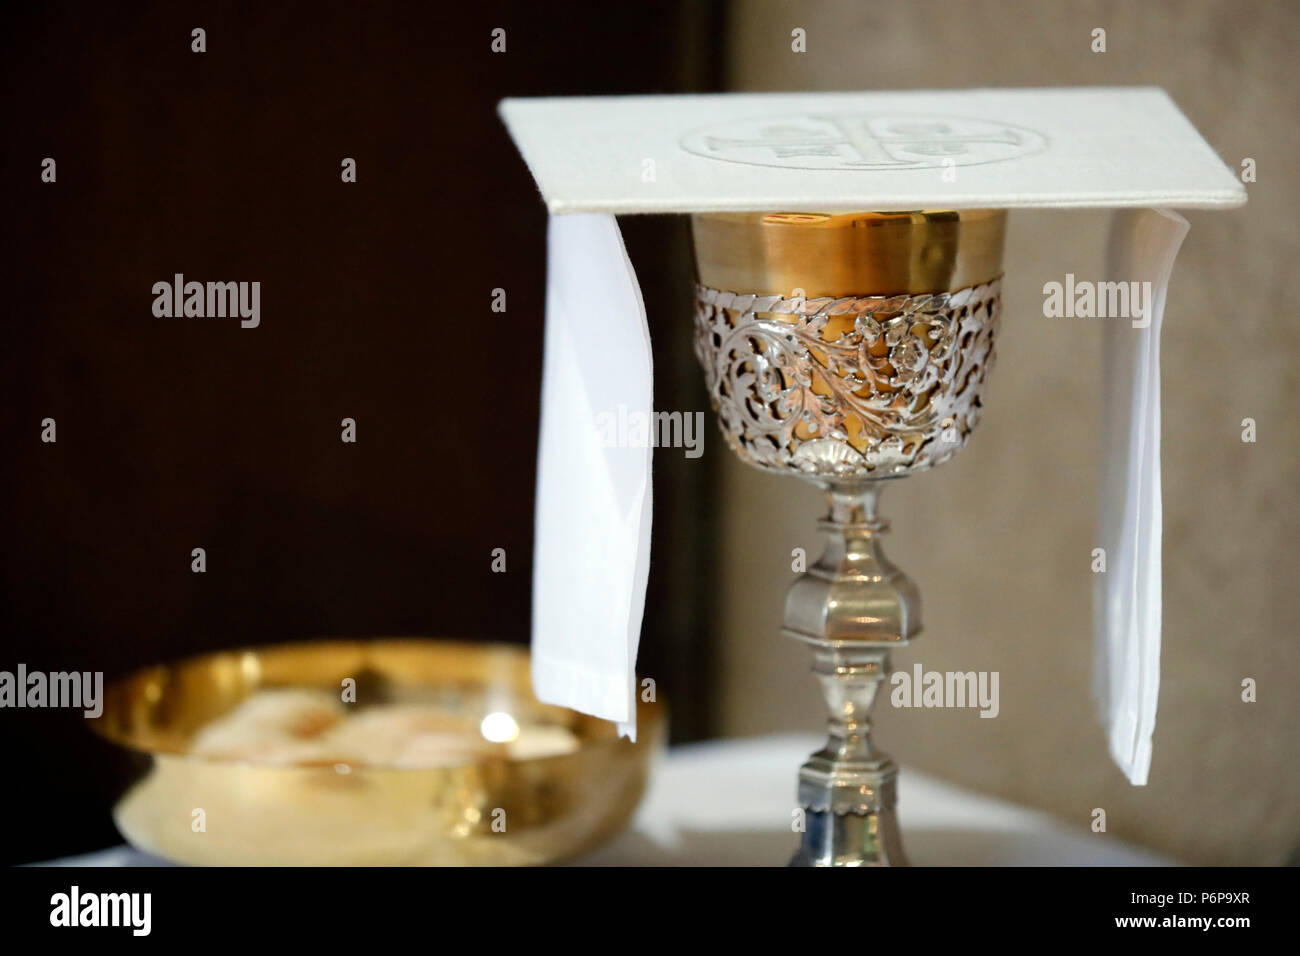 Saint Jacques Church Eucharist Table With The Liturgical Items